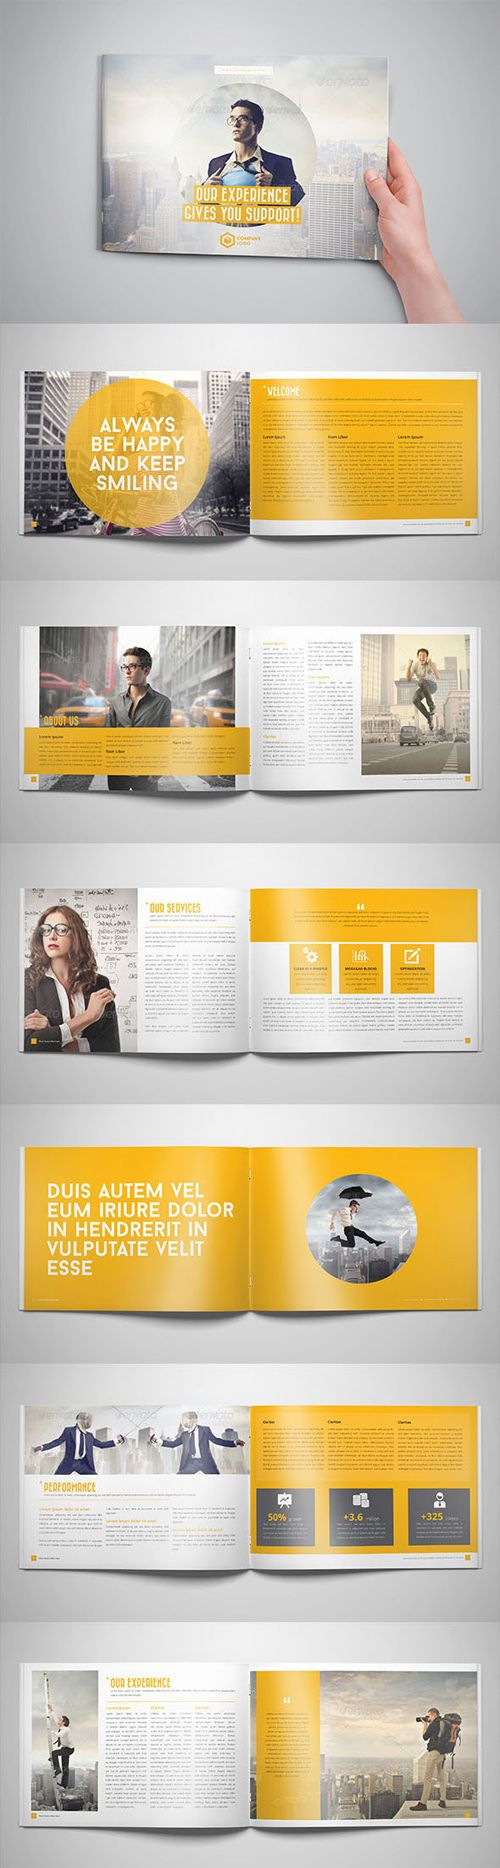 business horizontal brochure introducing moirestudiosjkt a thriving website and graphic design studio feel free to follow us moirestudiosjkt to see - Booklet Design Ideas